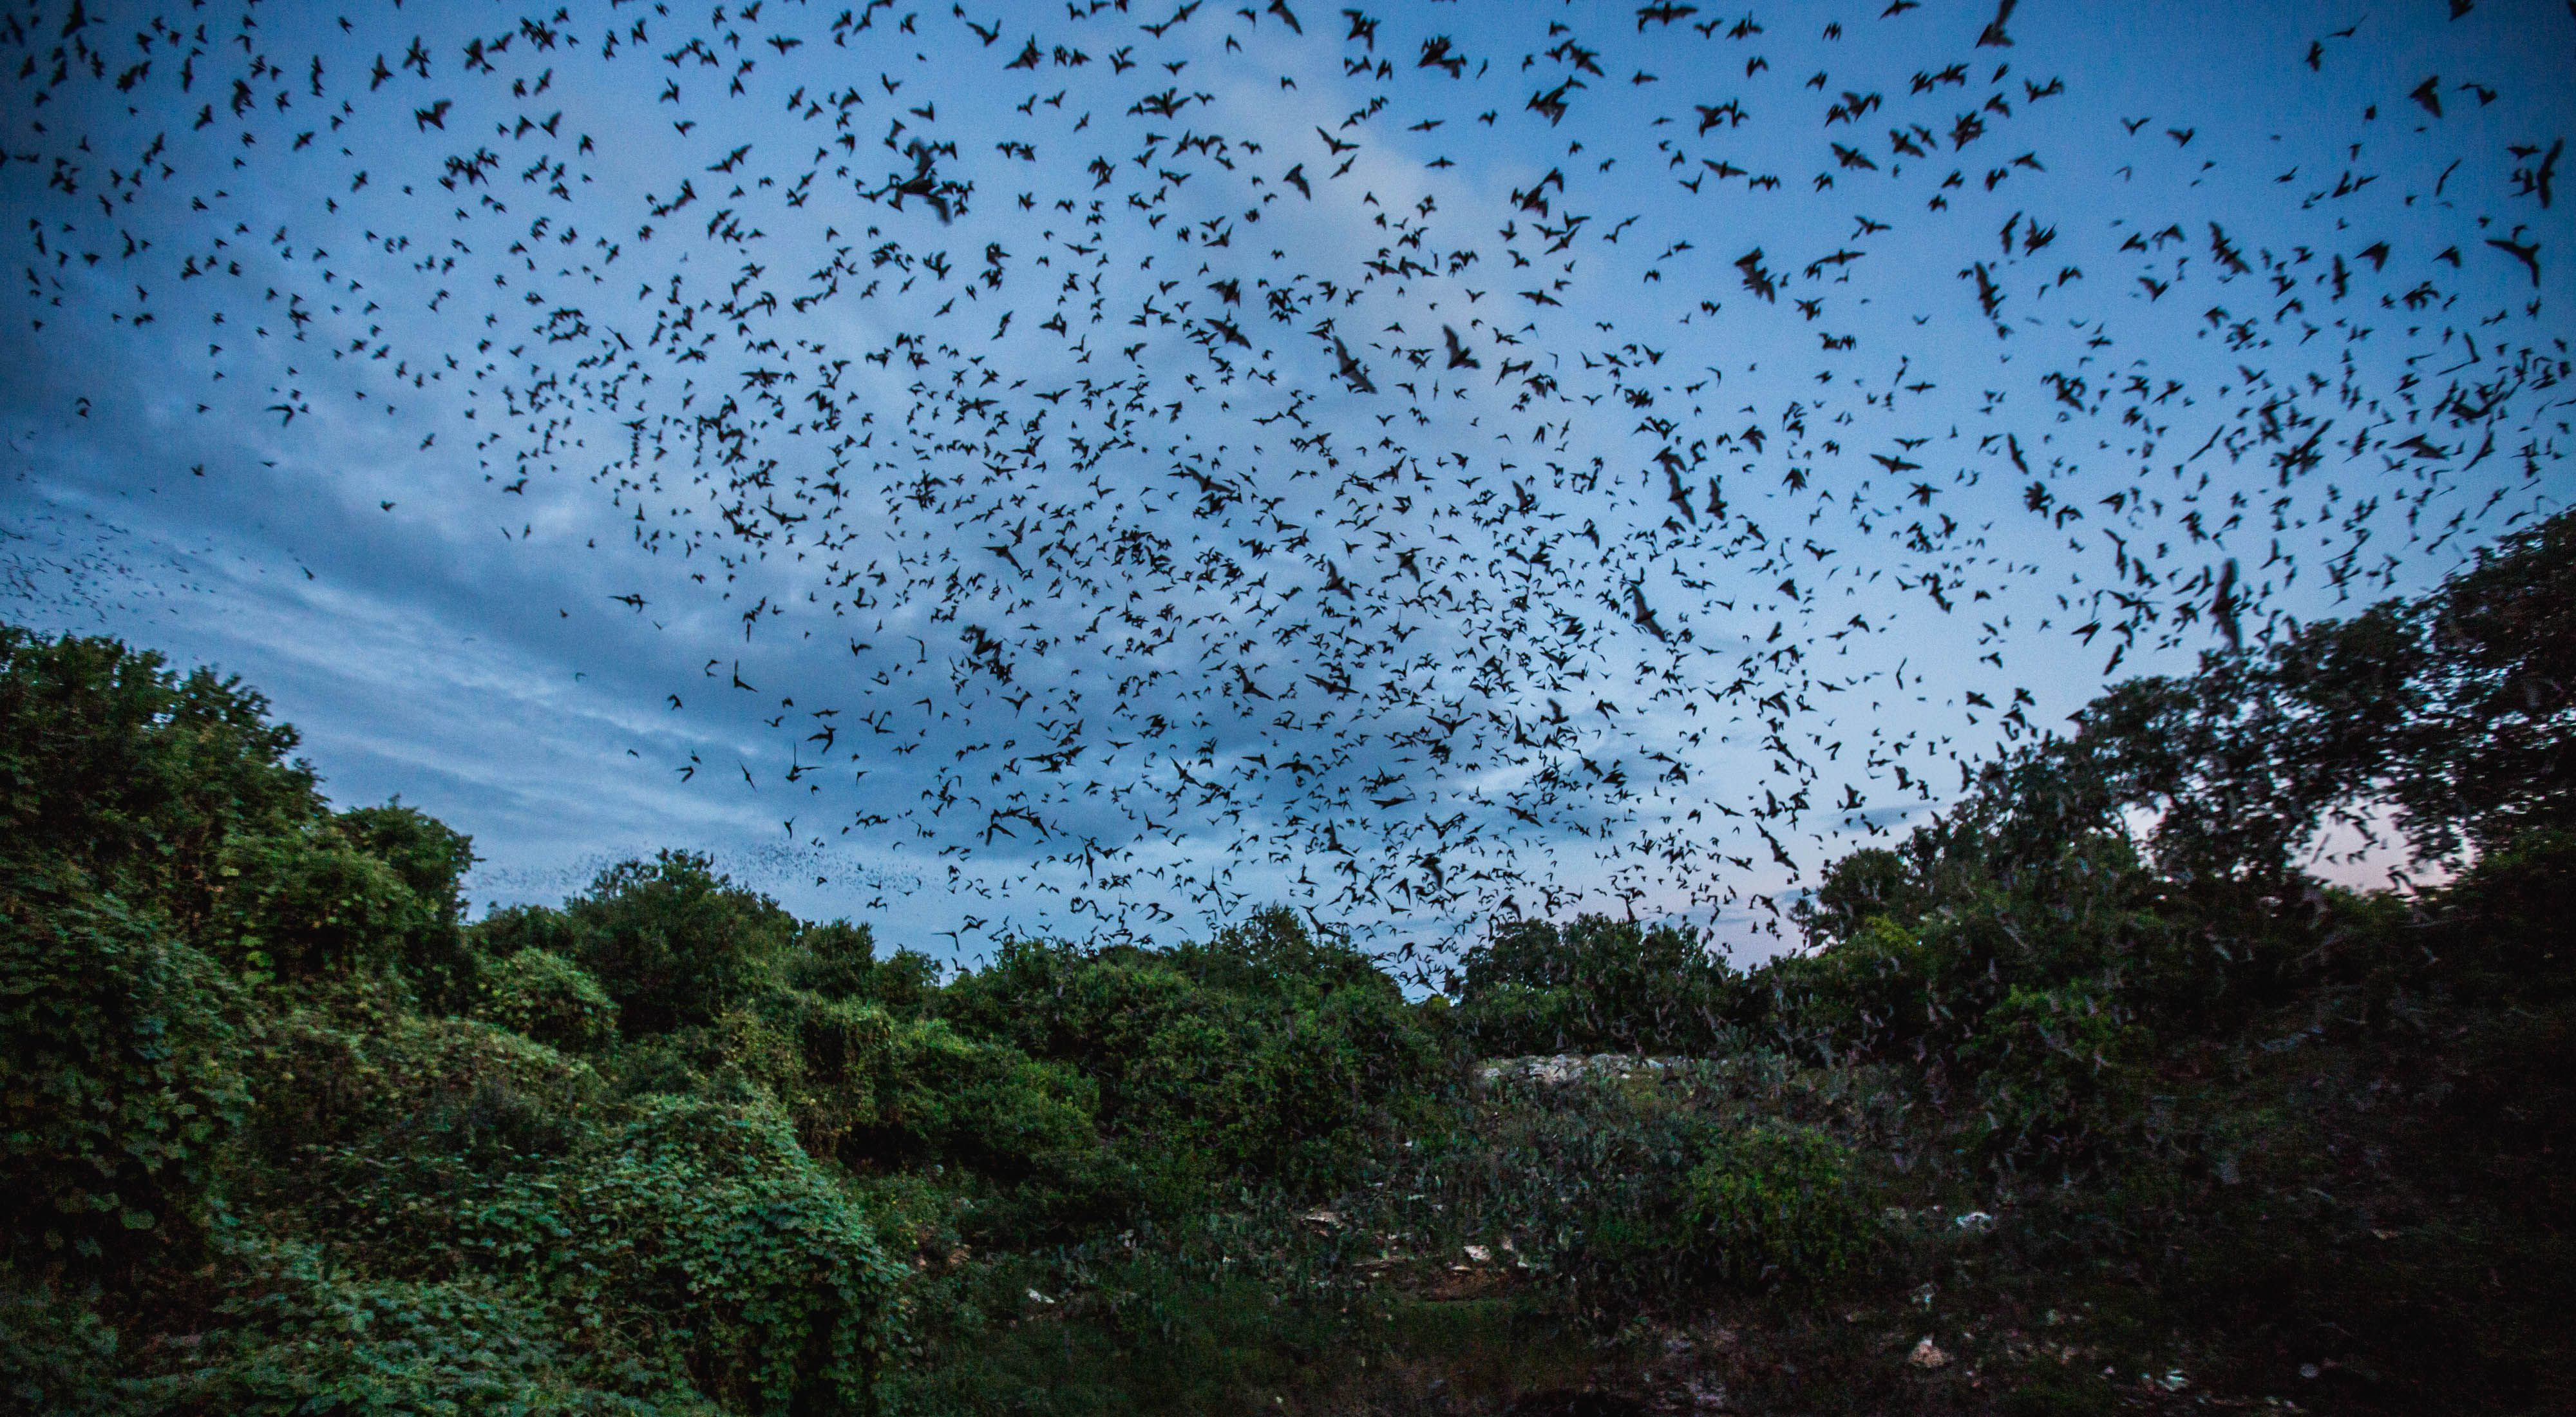 Thousands of Mexican free-tailed bats emerge from the Bracken Cave in Texas at dusk to feed on insects.